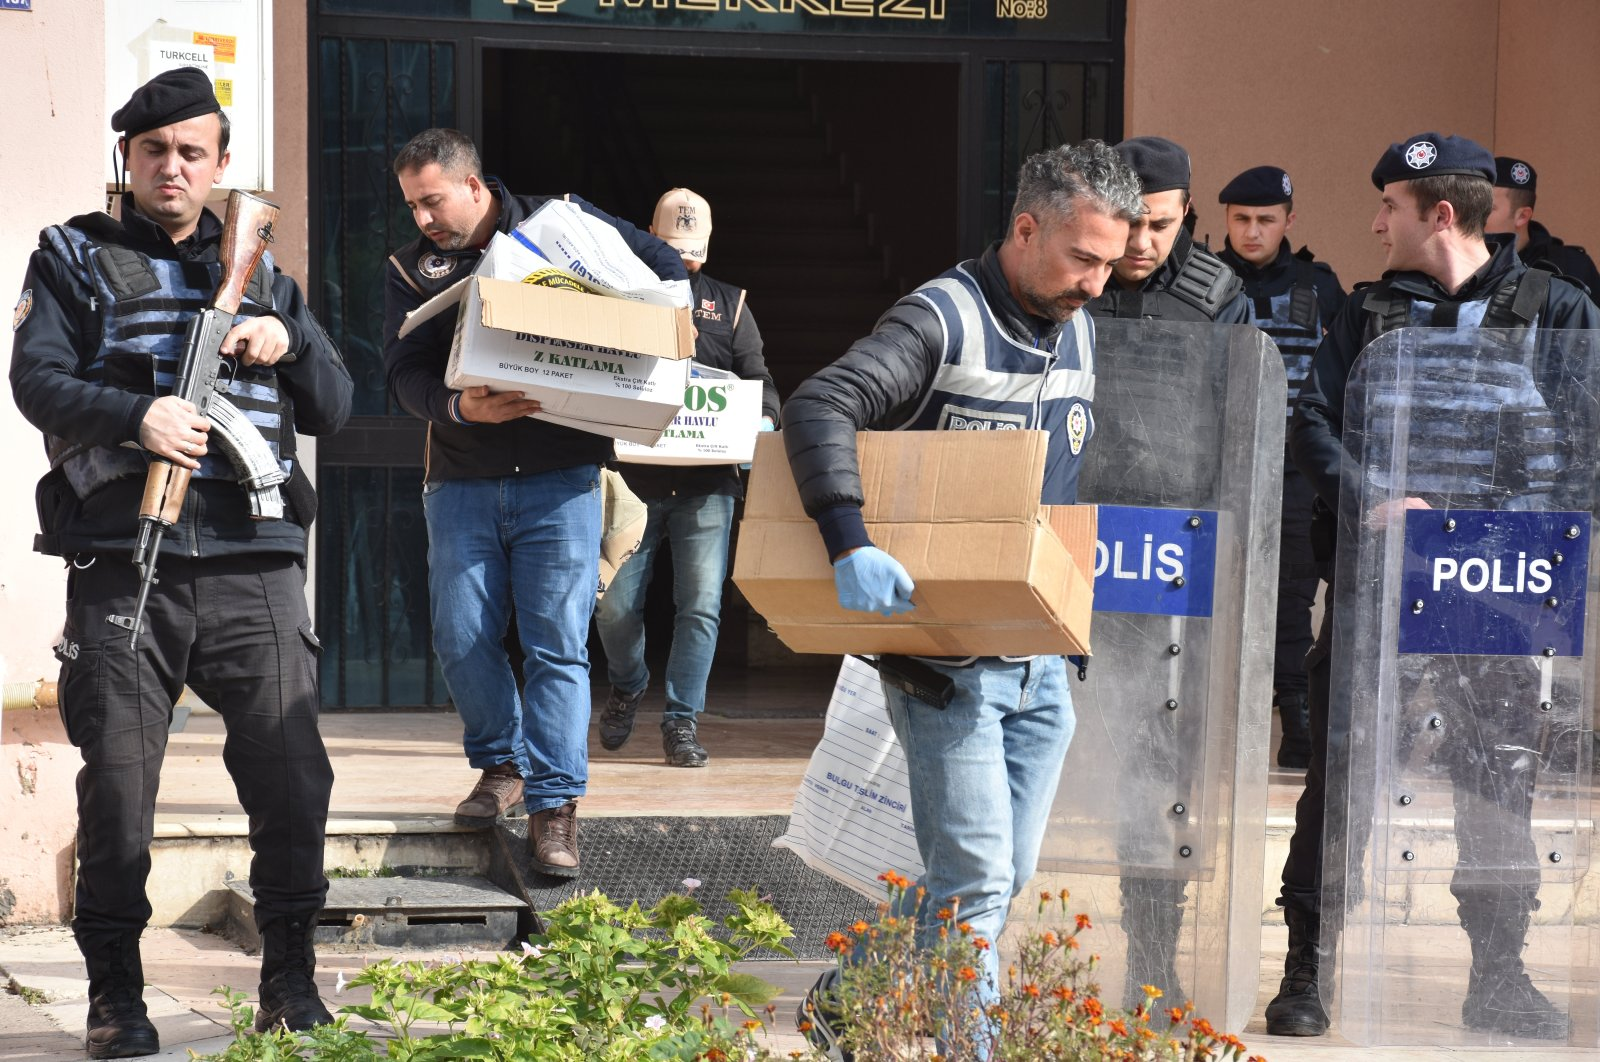 Security forces conduct an operation against the PKK/KCK in Turkey's Gaziantep province, seizing documents and digital material, Nov. 15, 2019 (AA Photo)